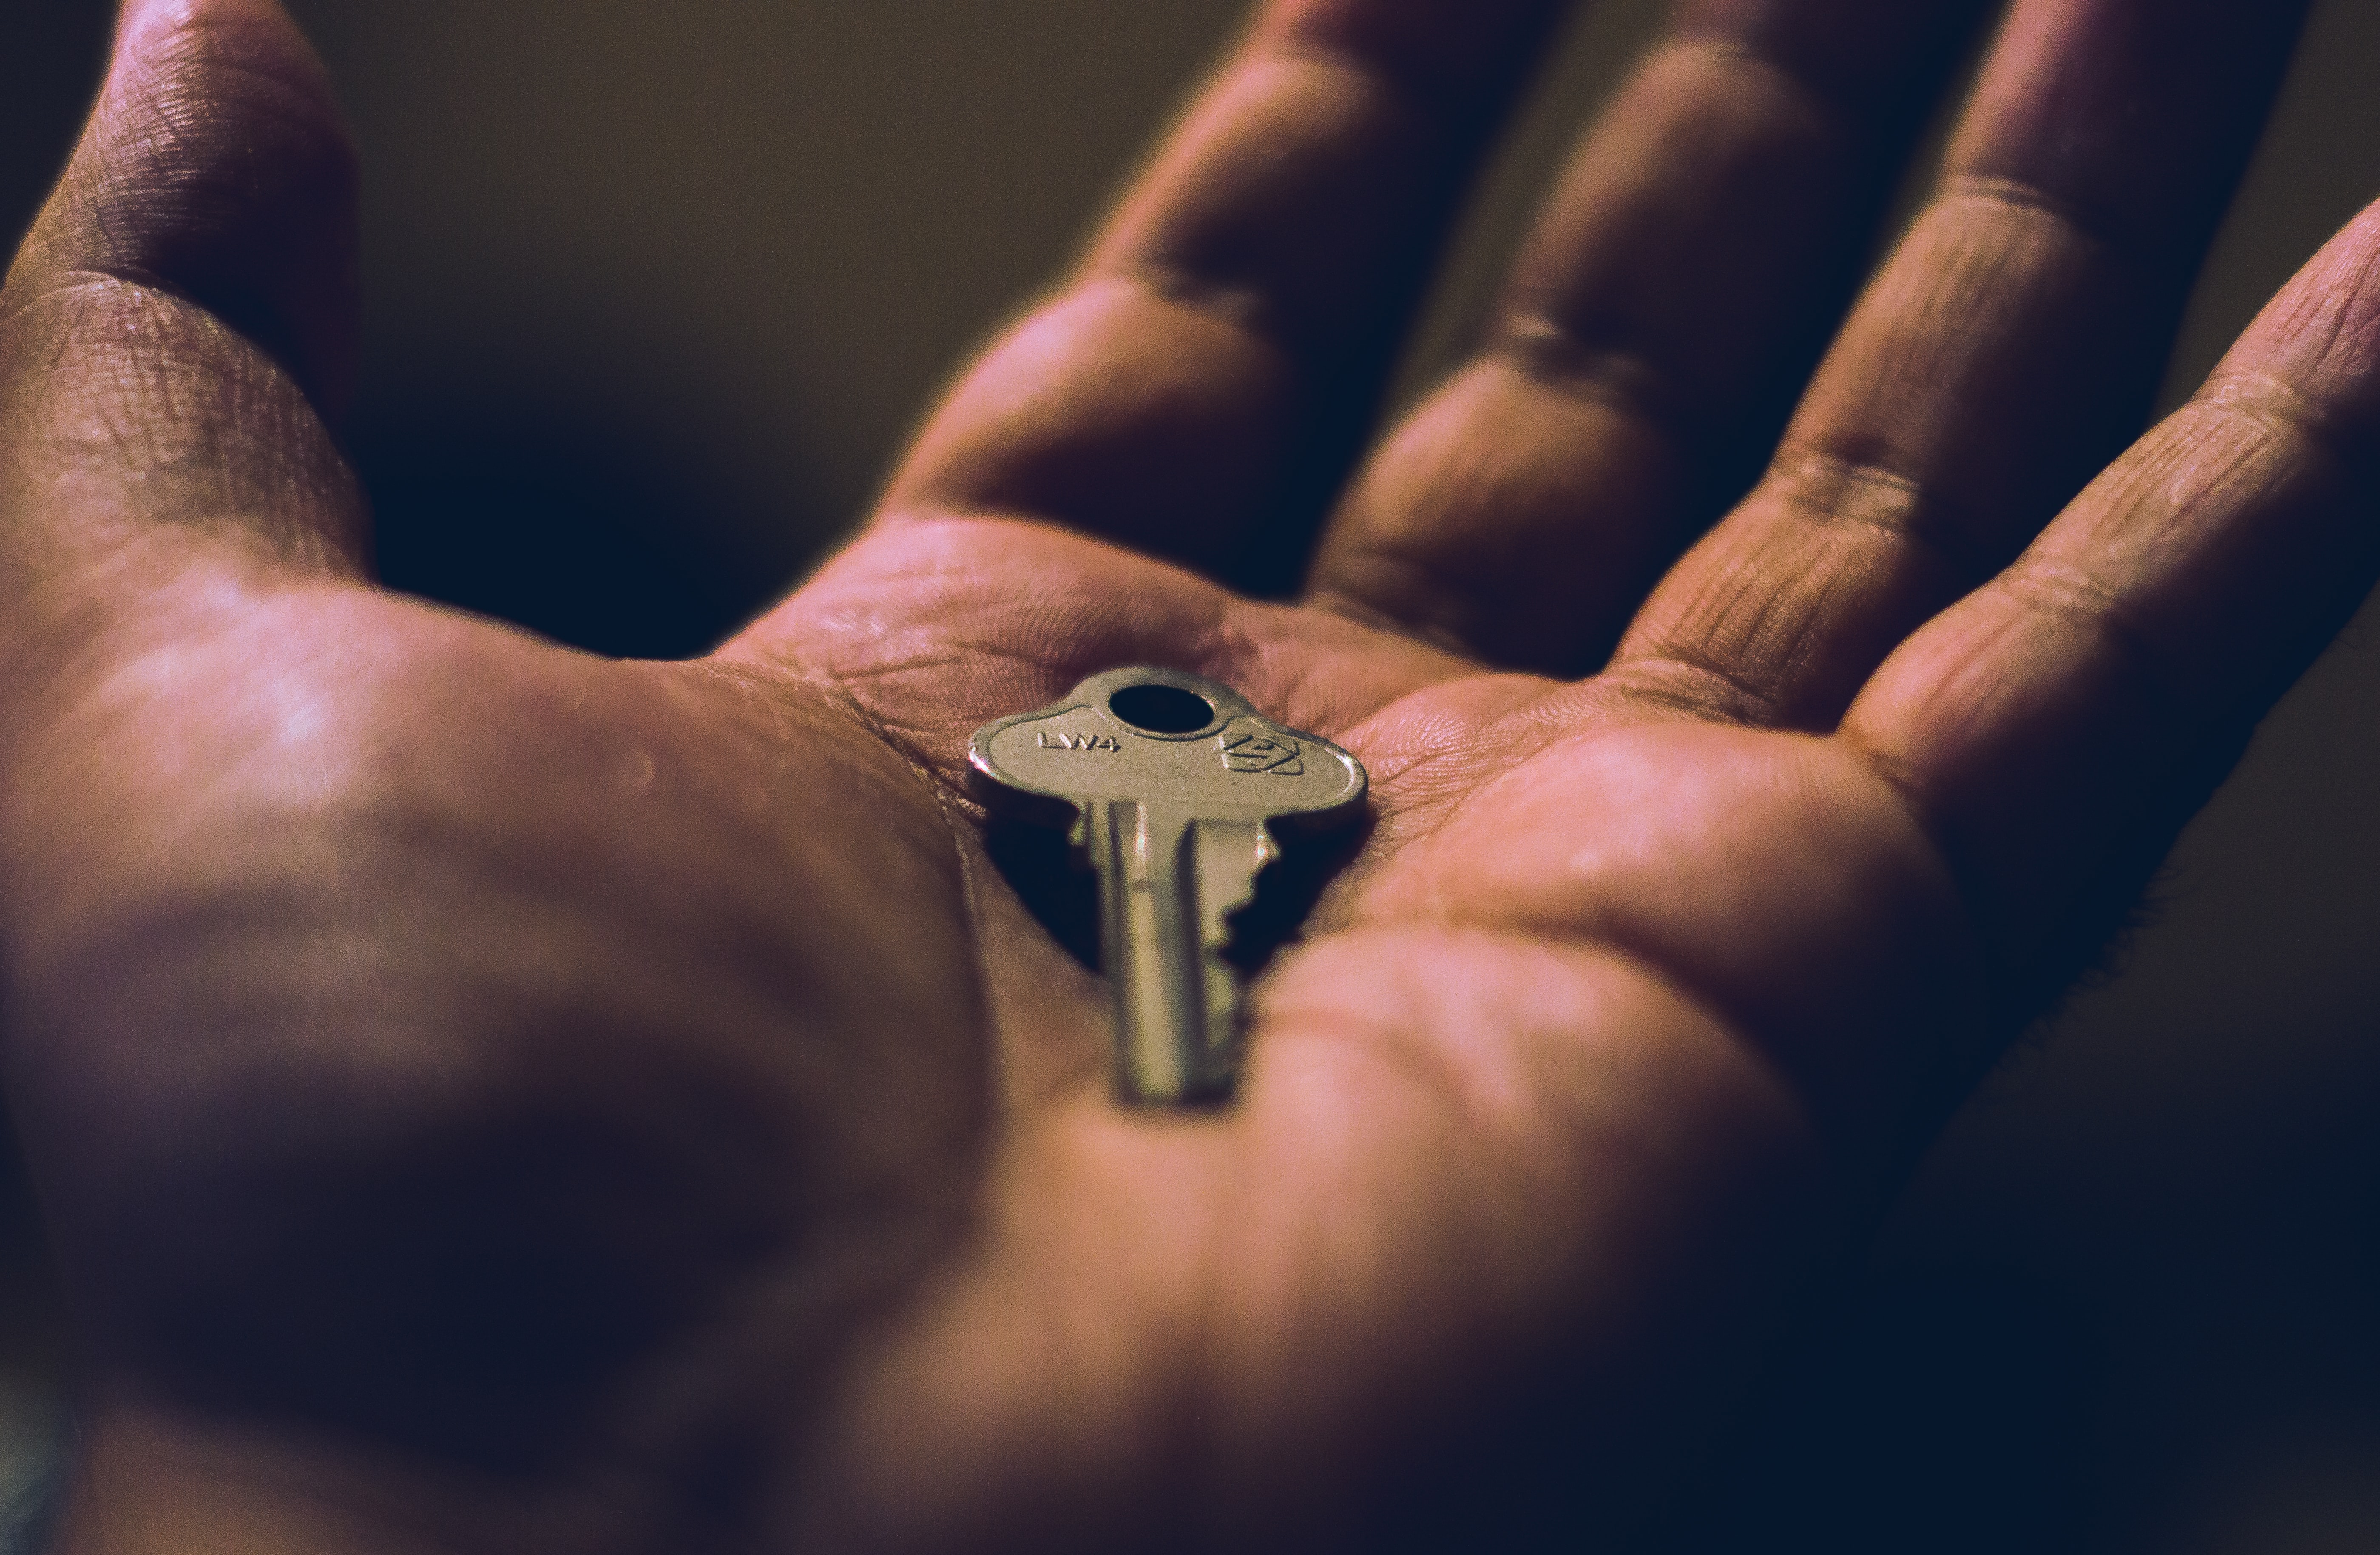 person holding key